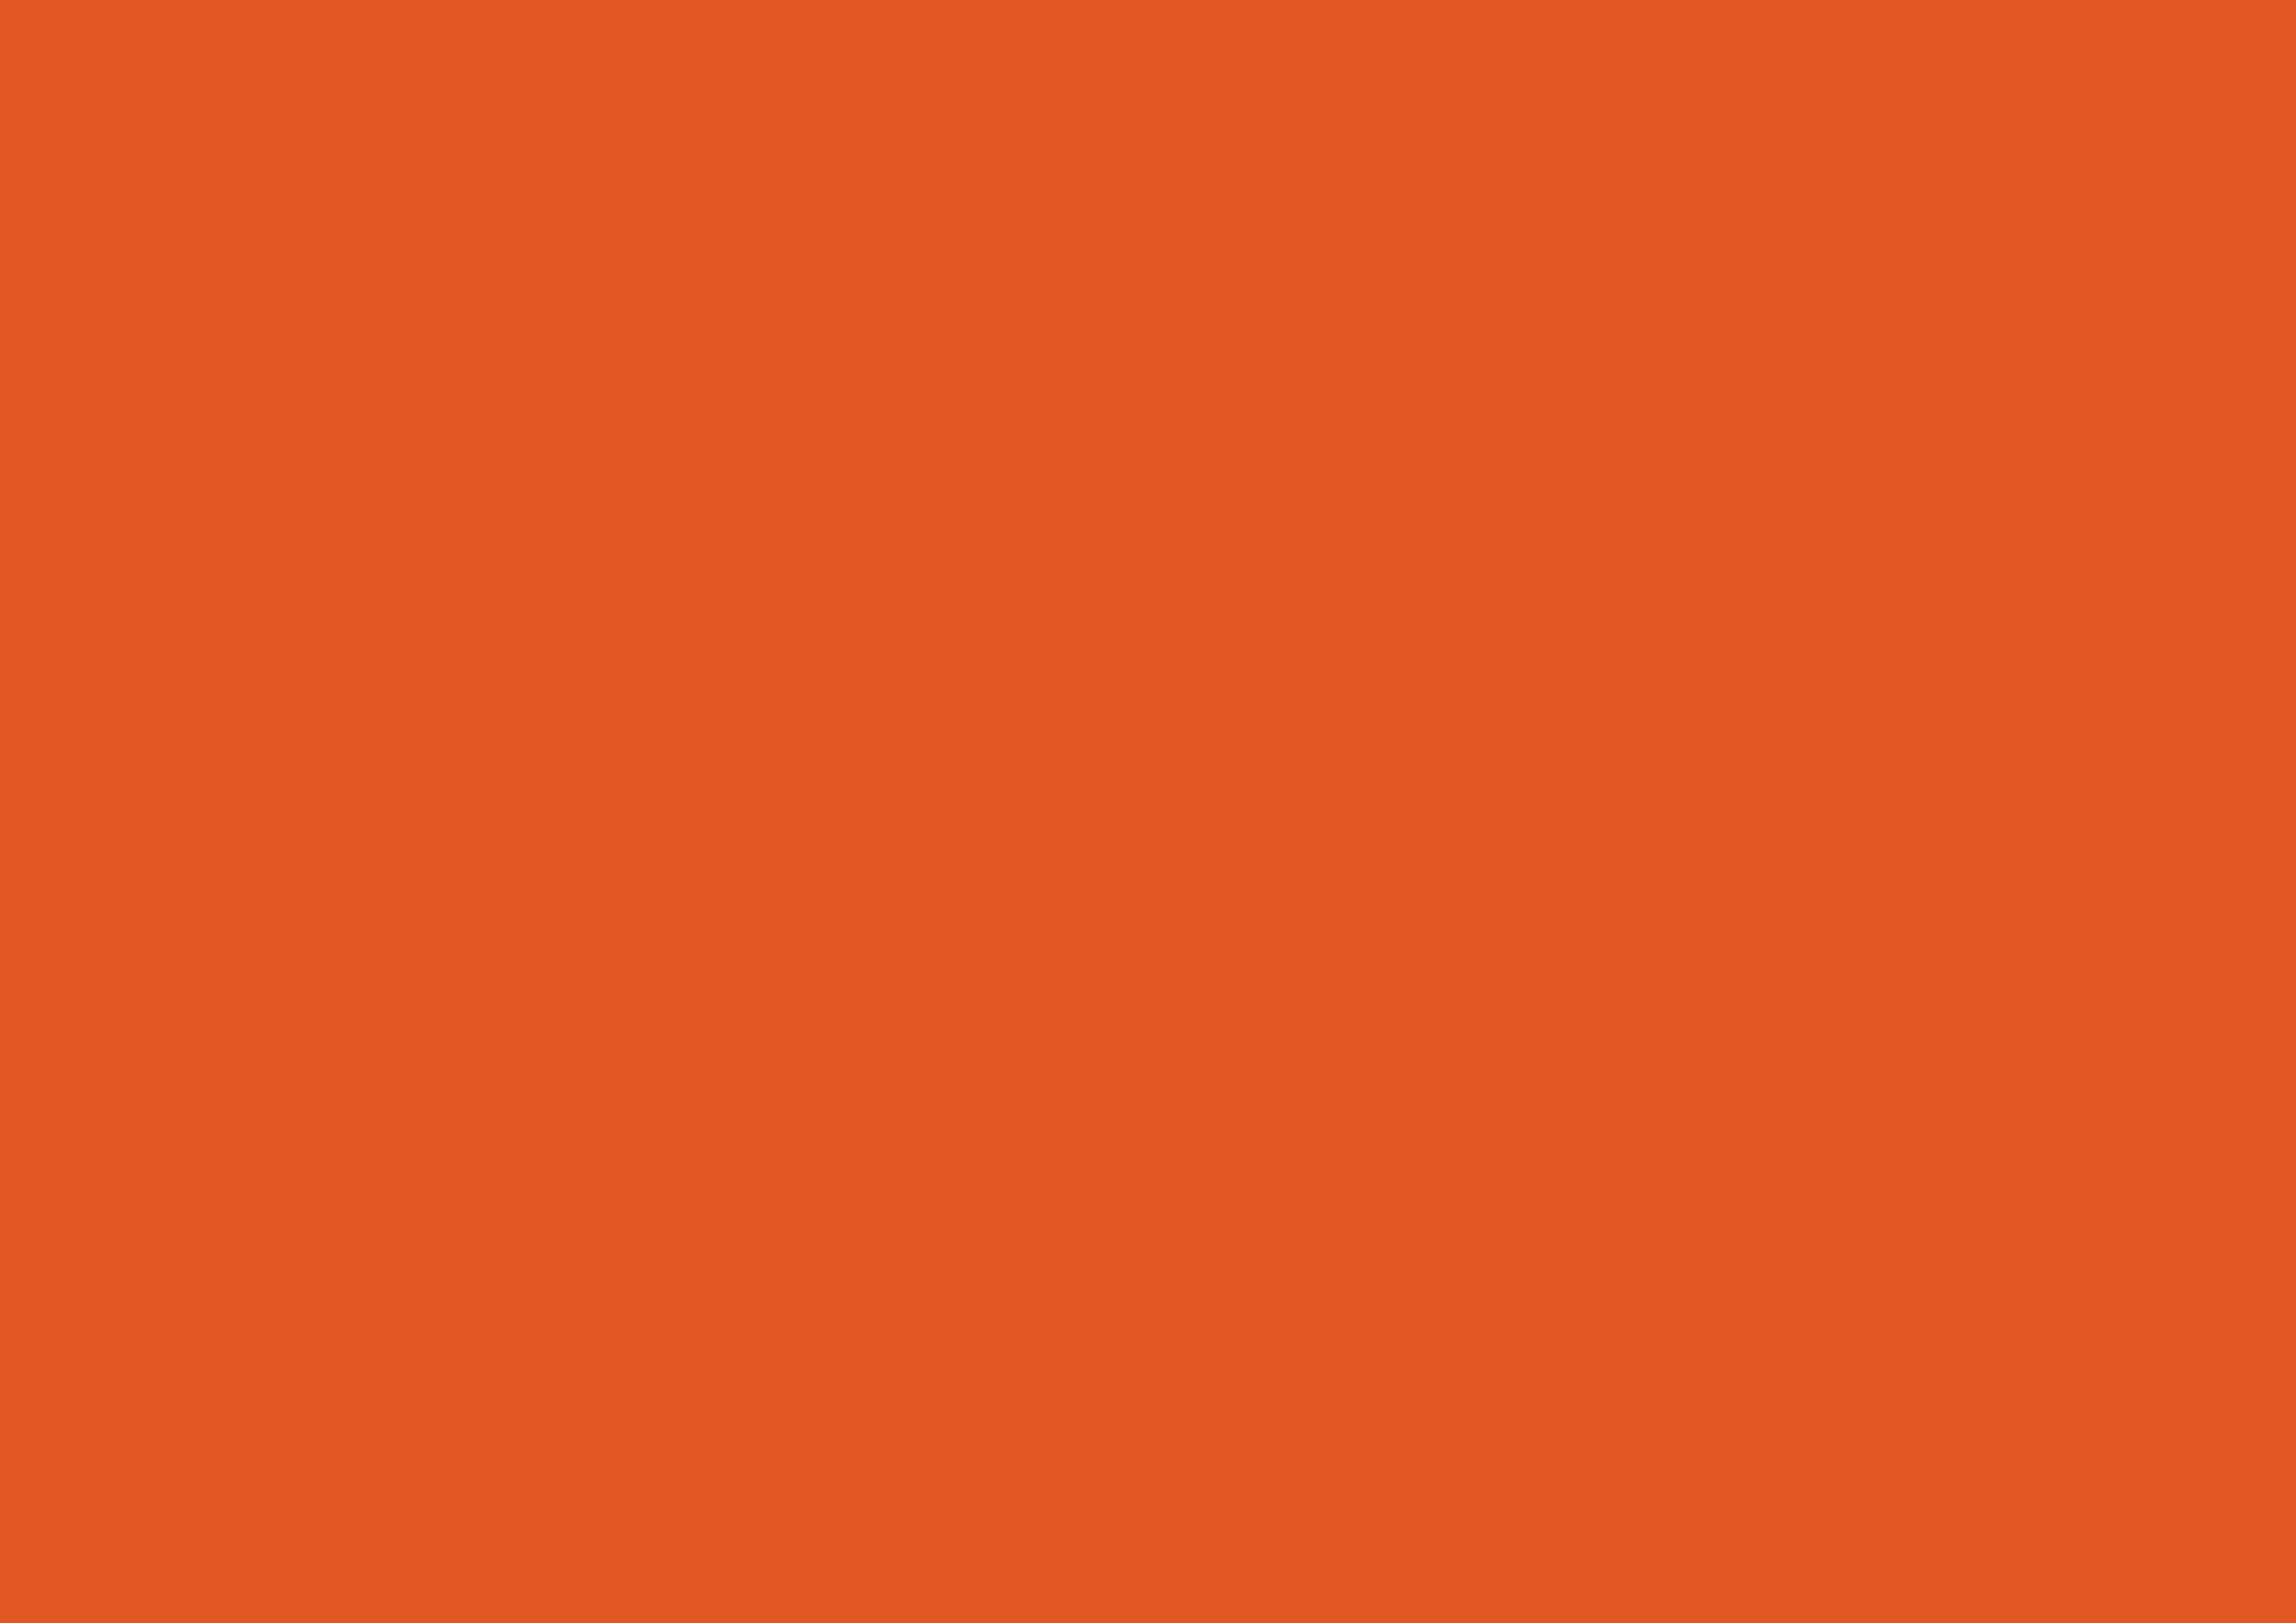 3508x2480 Flame Solid Color Background